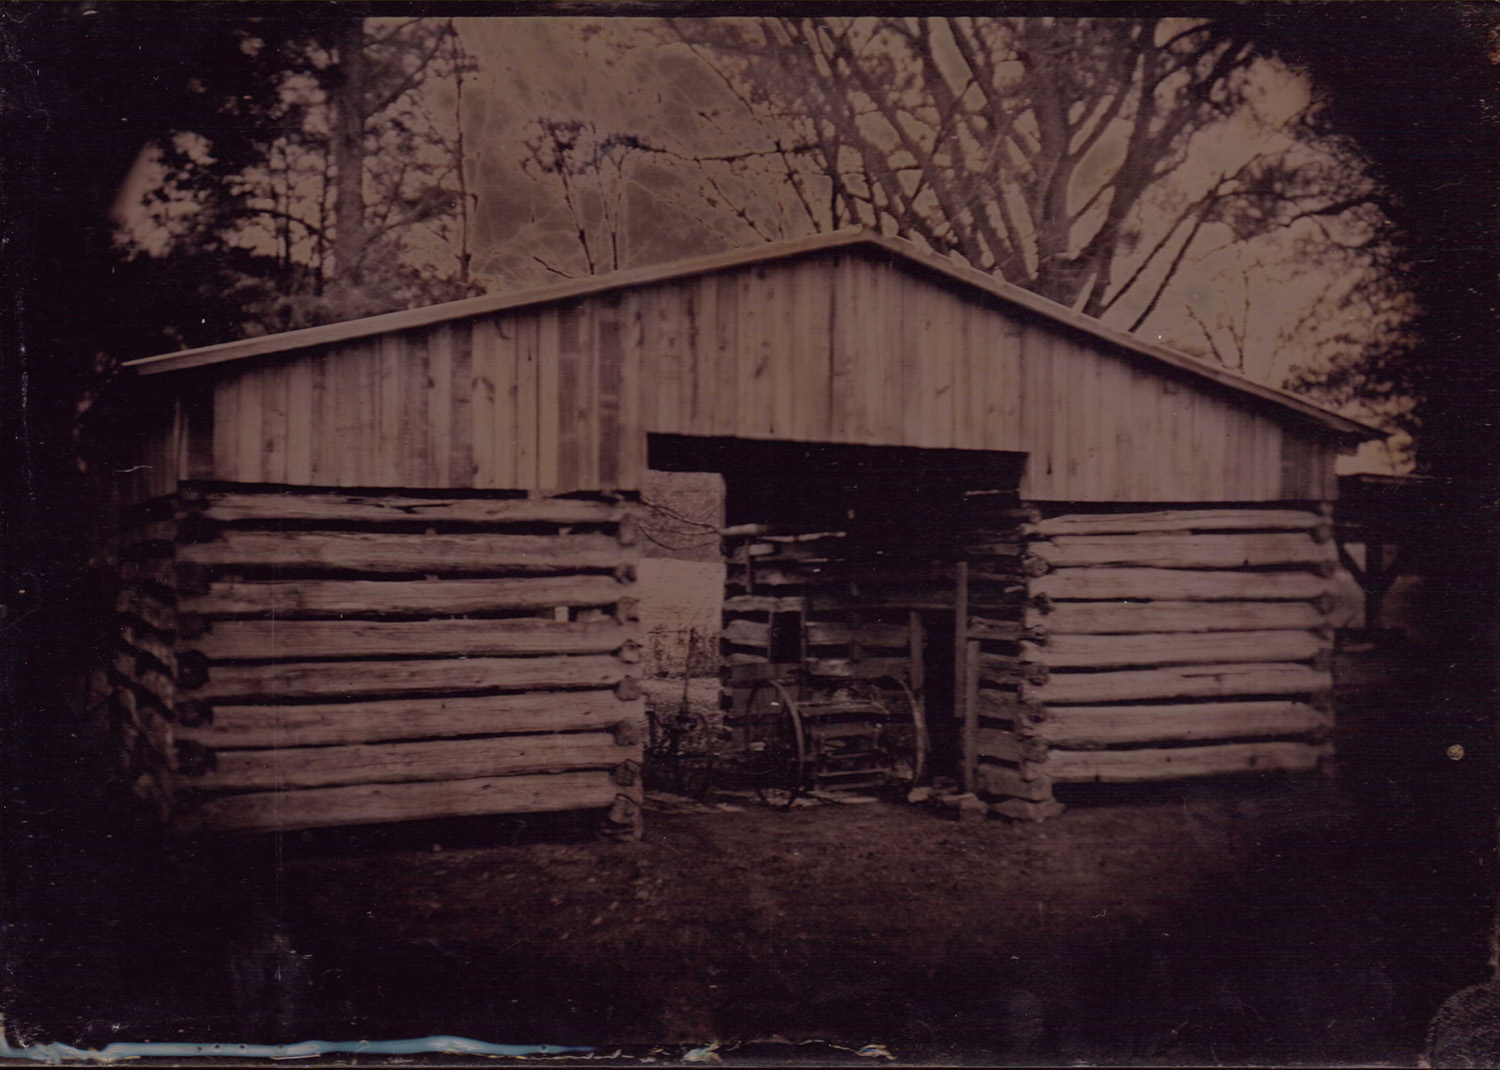 Ole Barn - By:Bones Cheatwood  http://forgottenimages.wixsite.com/photography